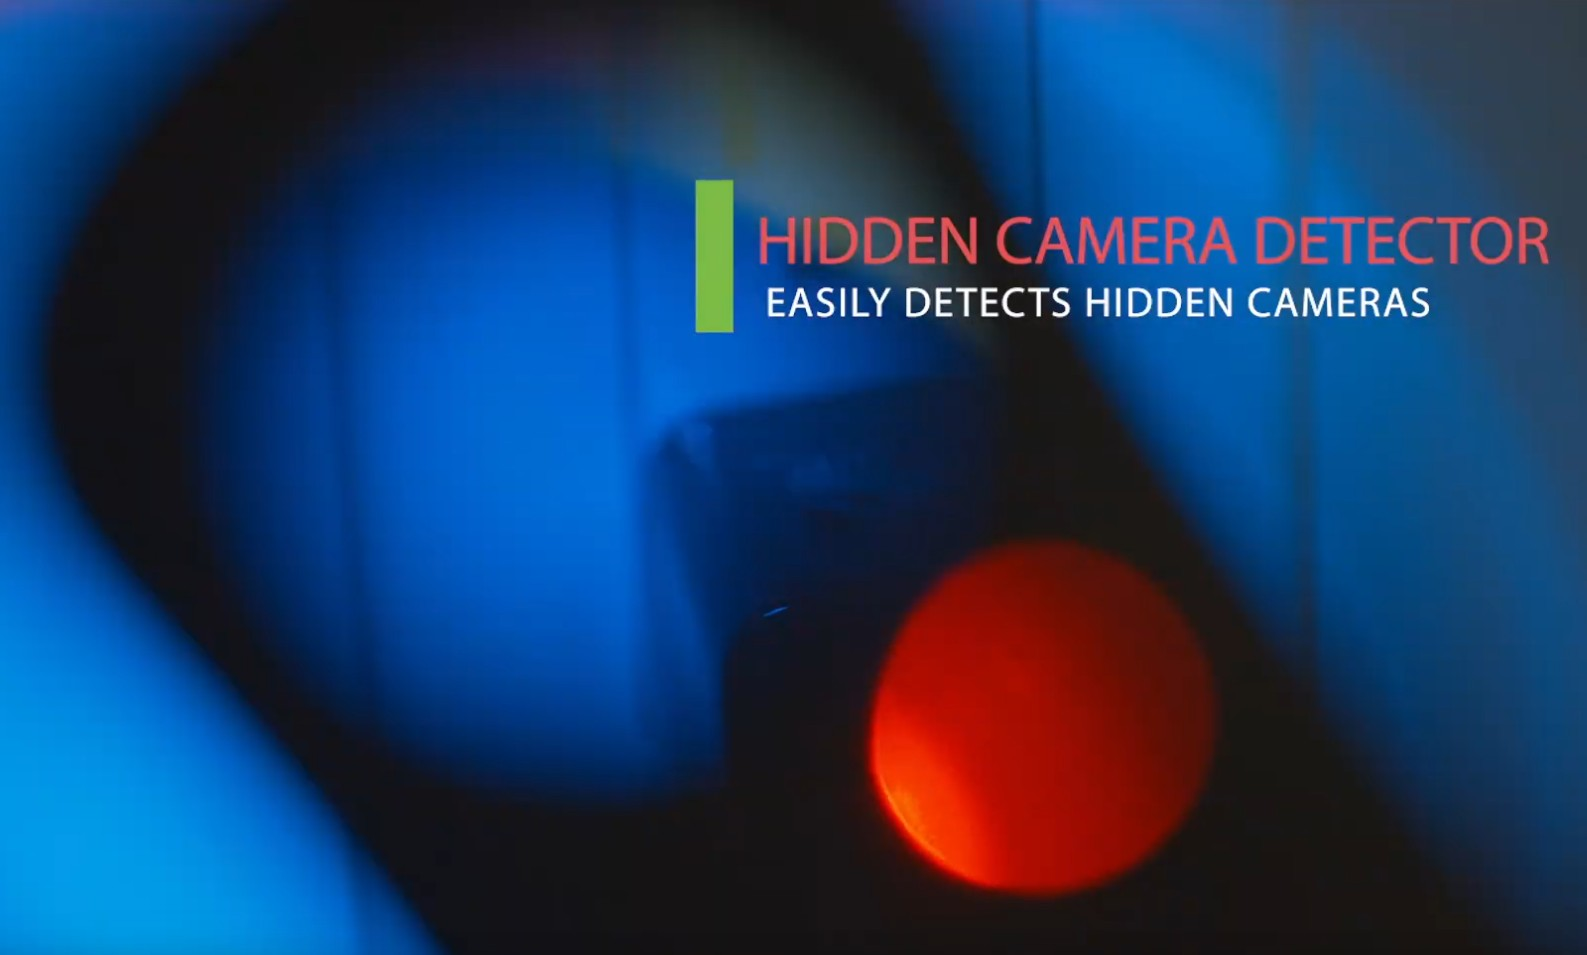 Lexuma-hidden-camera-detector-anti-spy-motion-sensor-red-spot-reflection